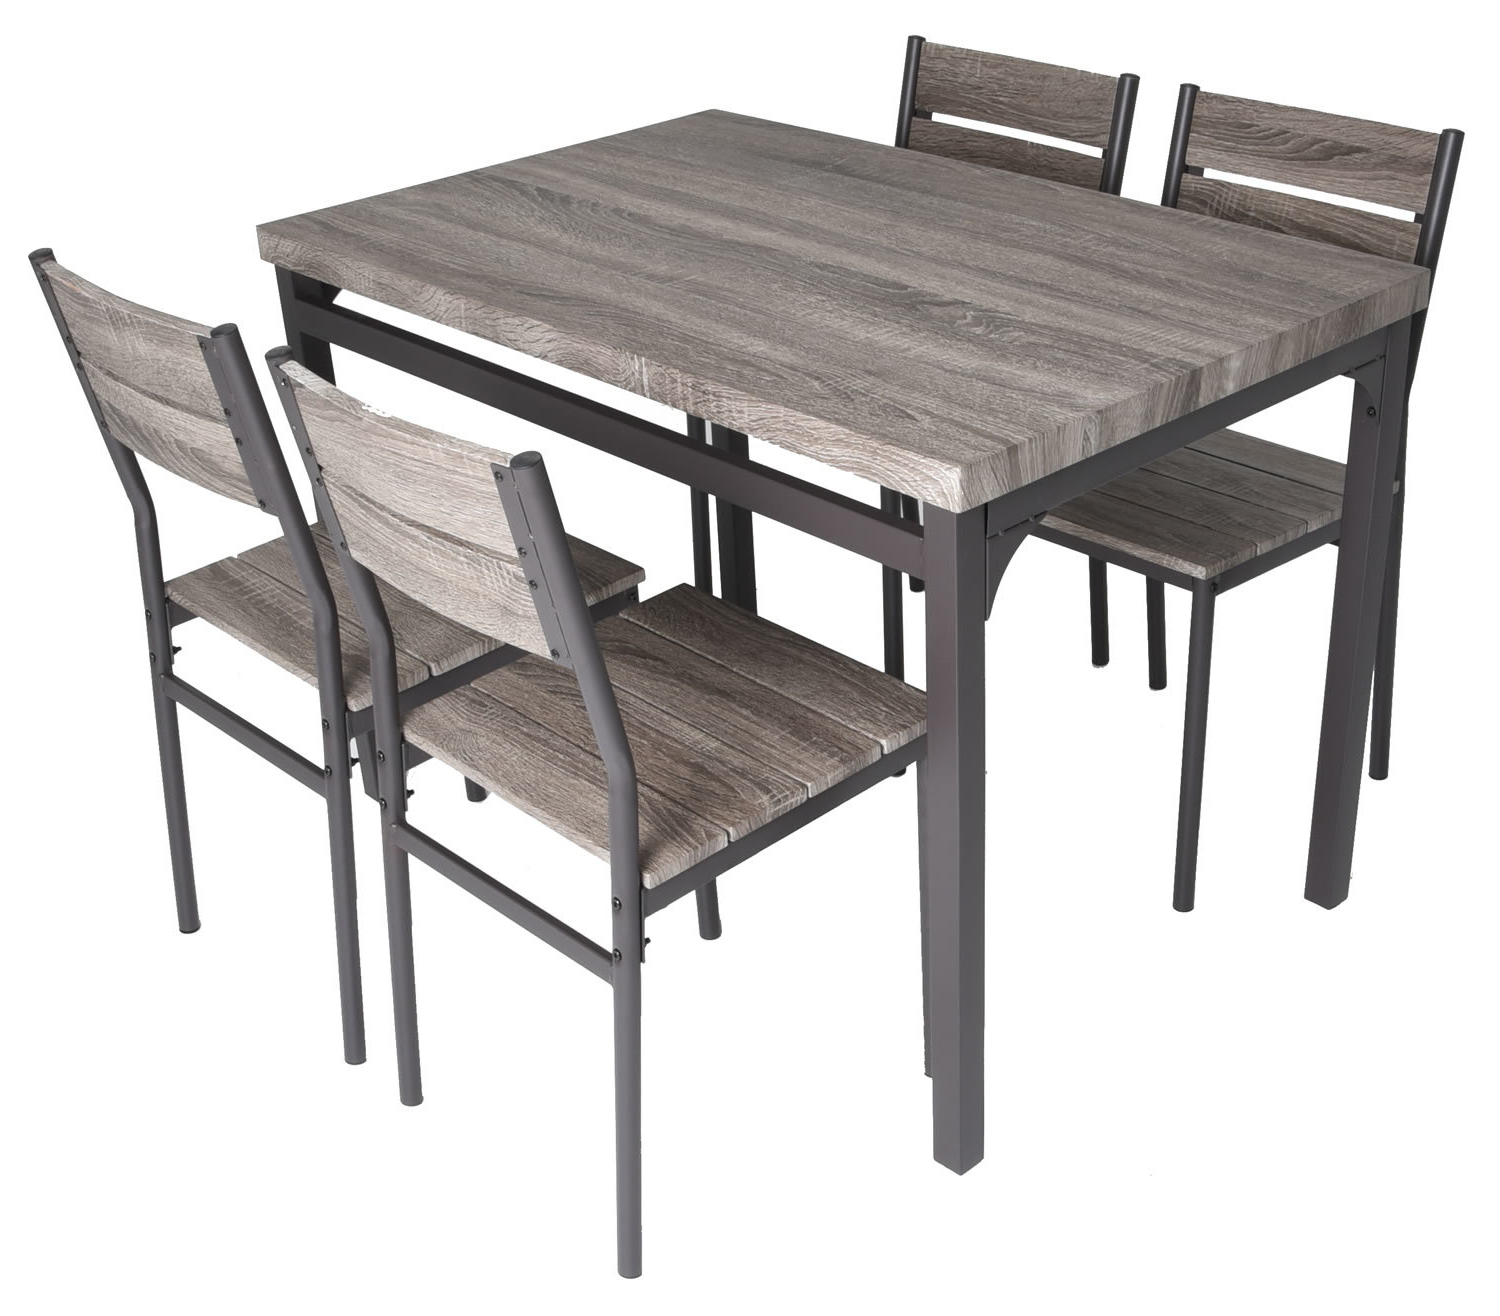 Gracie Oaks Emmeline 5 Piece Breakfast Nook Dining Set & Reviews With Regard To Preferred 5 Piece Breakfast Nook Dining Sets (View 14 of 25)